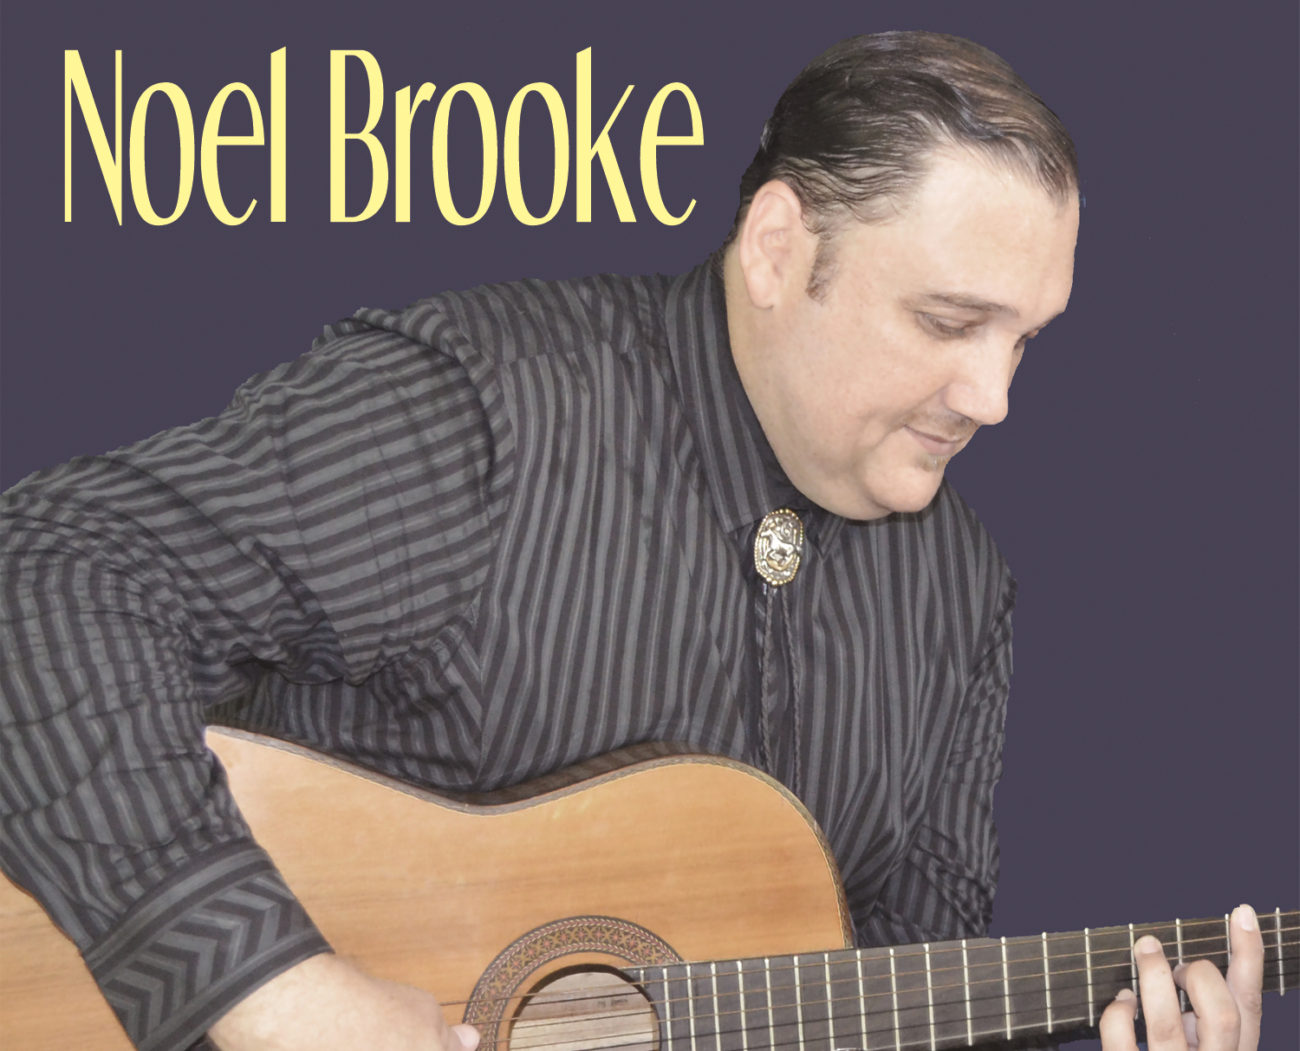 Artist Noel Brooke Shares The Evolution of Music Business